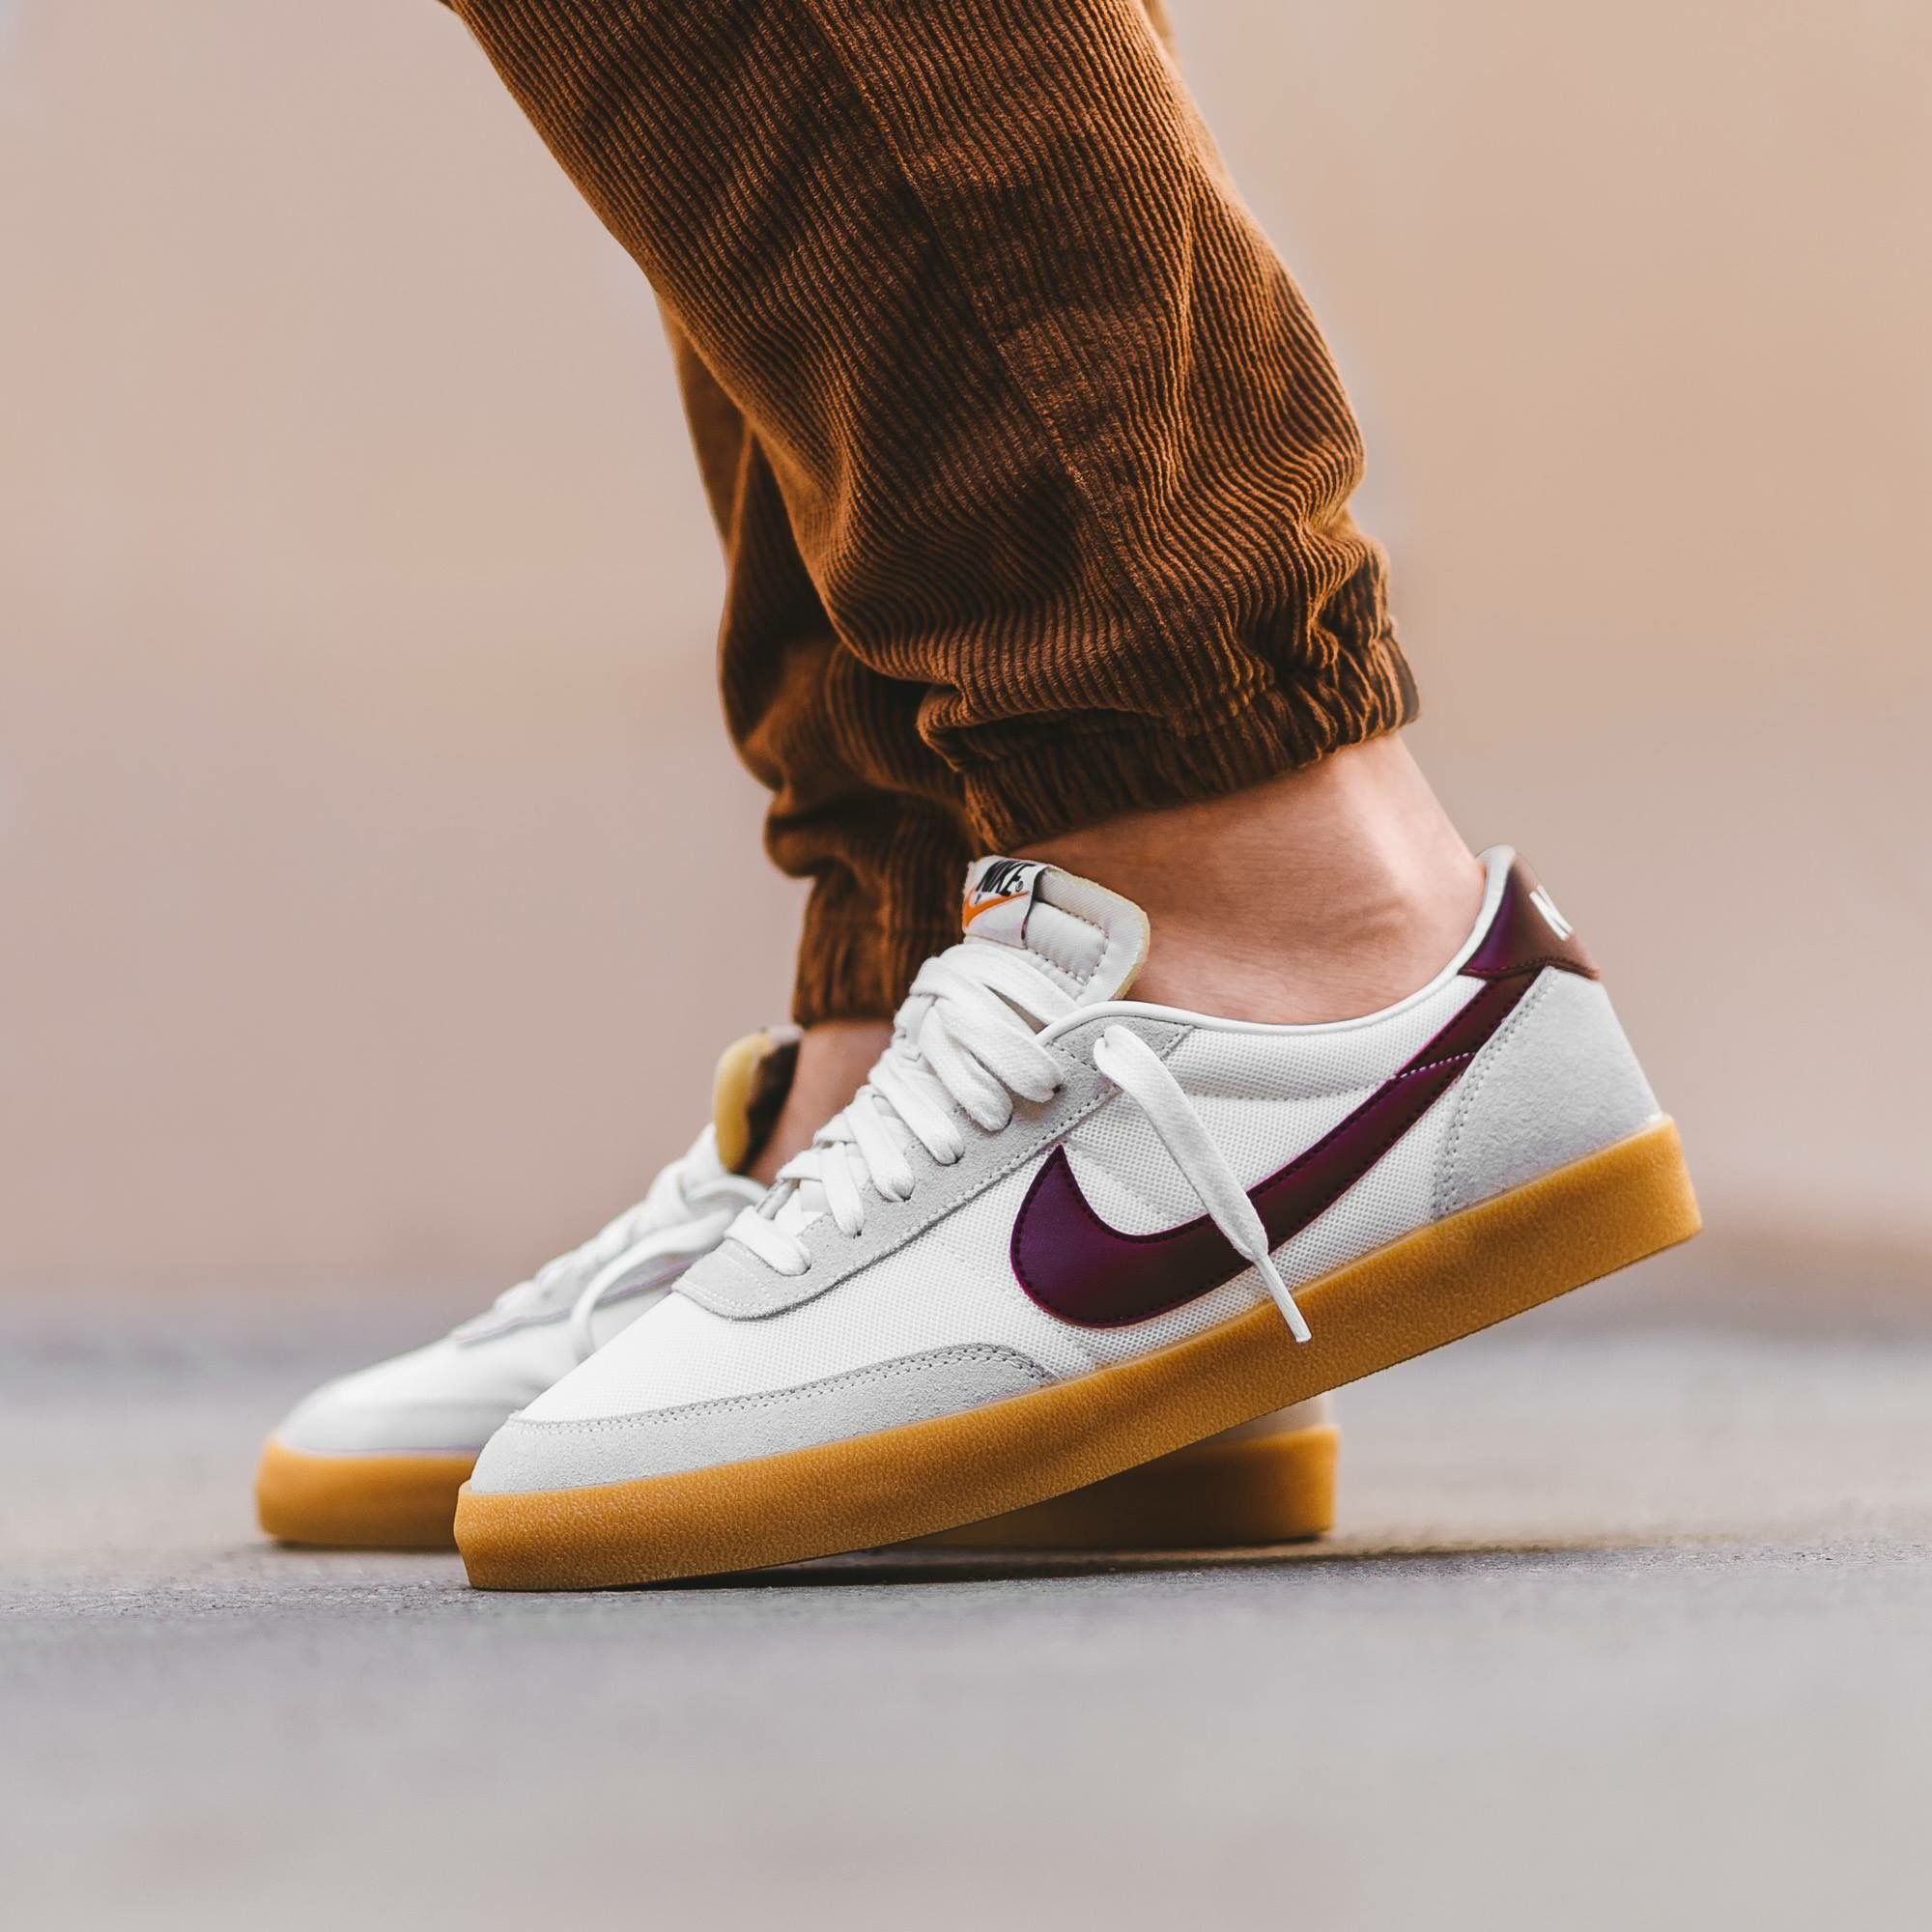 roble País lente  Nike Killshot II | Nike casual shoes, Sneakers fashion, Sneakers men fashion